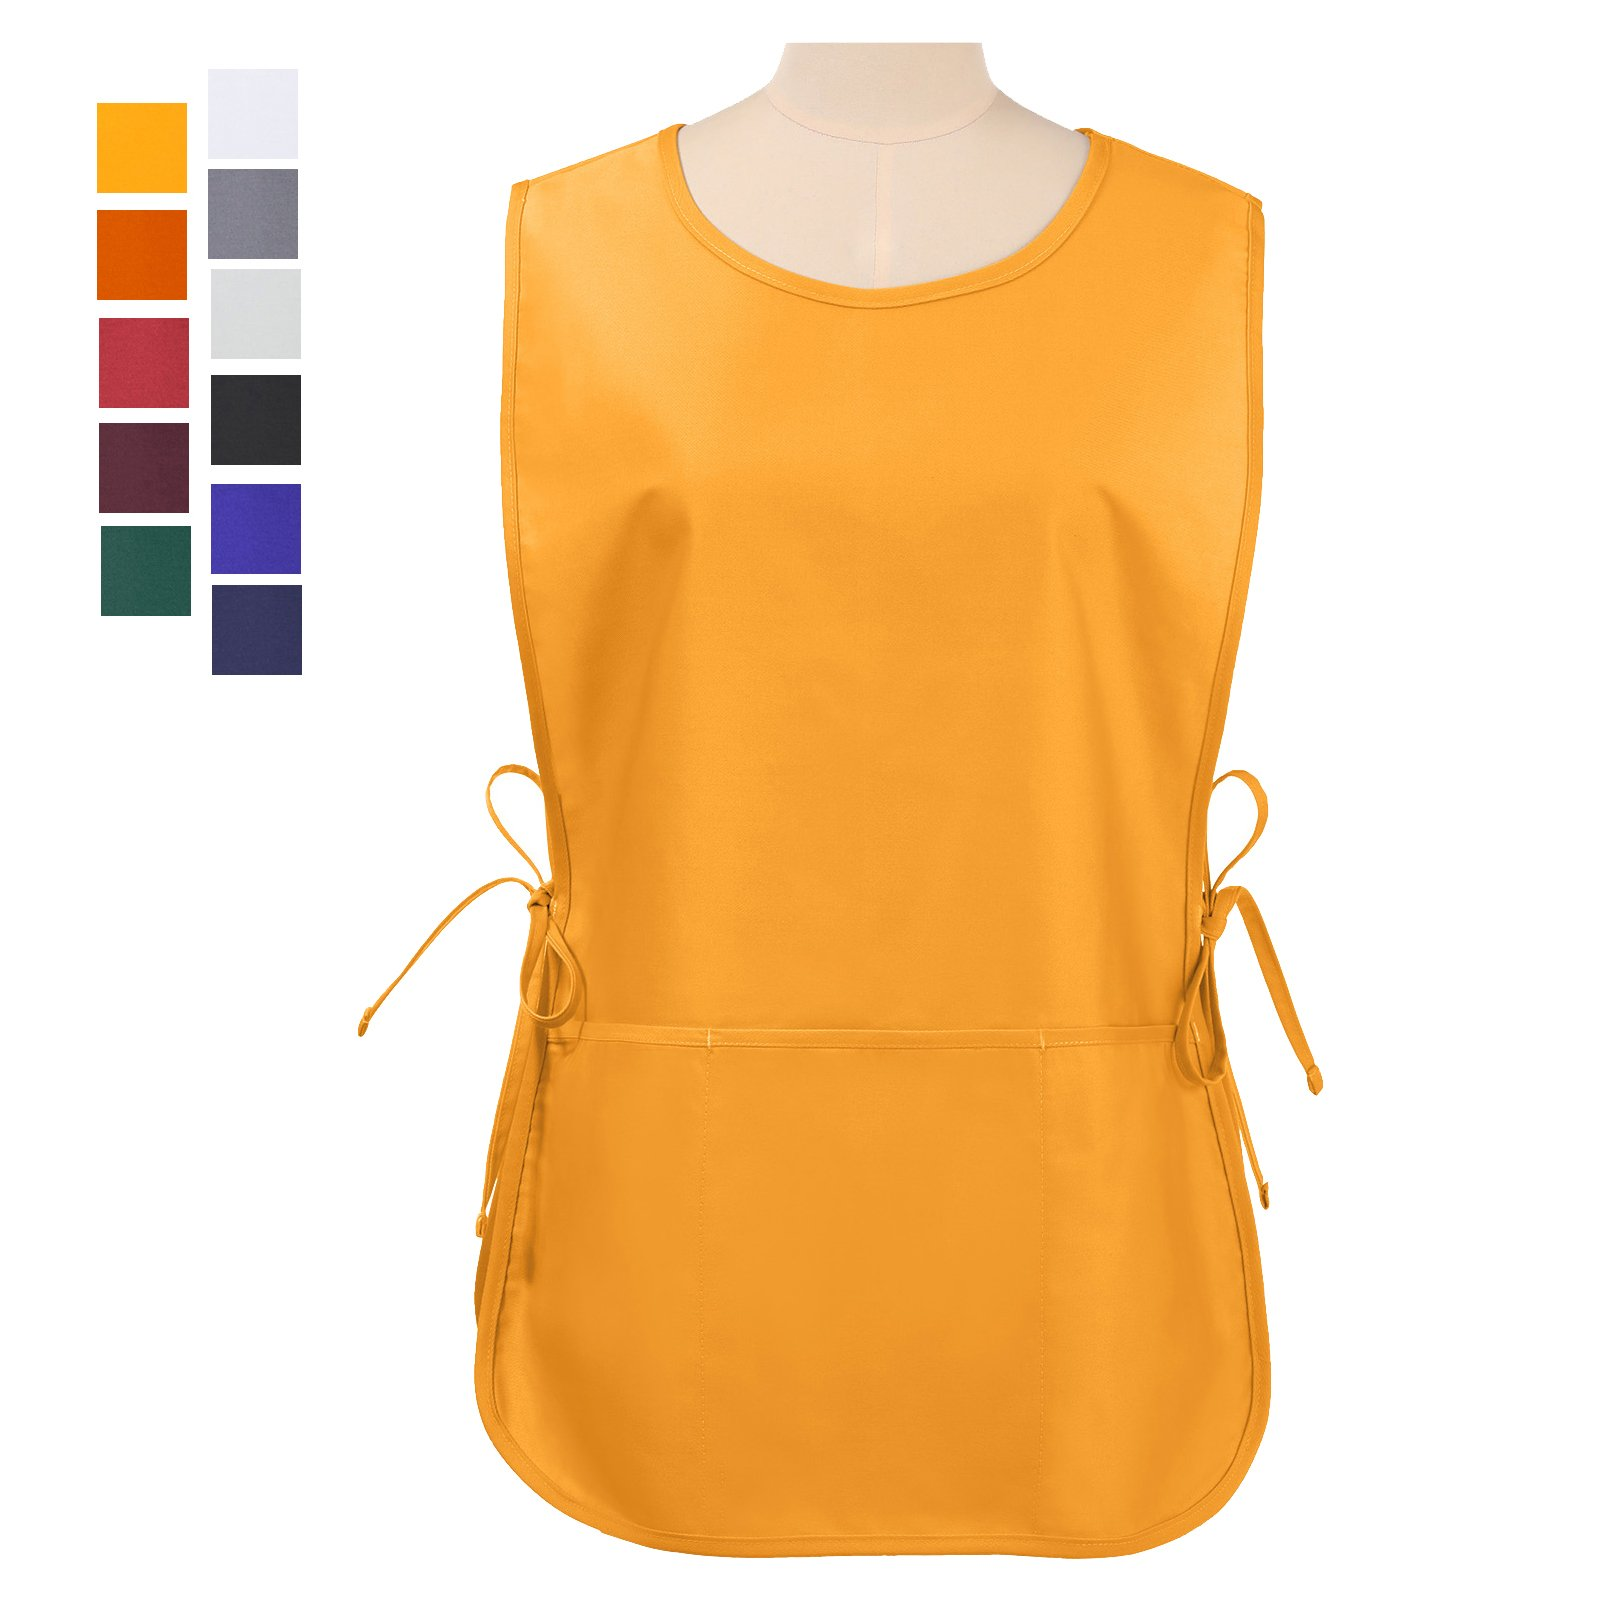 VEEYOO Chef Cobbler Apron with 3 pockets, Polyester Cotton, Art Smock Aprons for Unisex Adult Men Women, Mustard, Regular 20x28 inches by VEEYOO